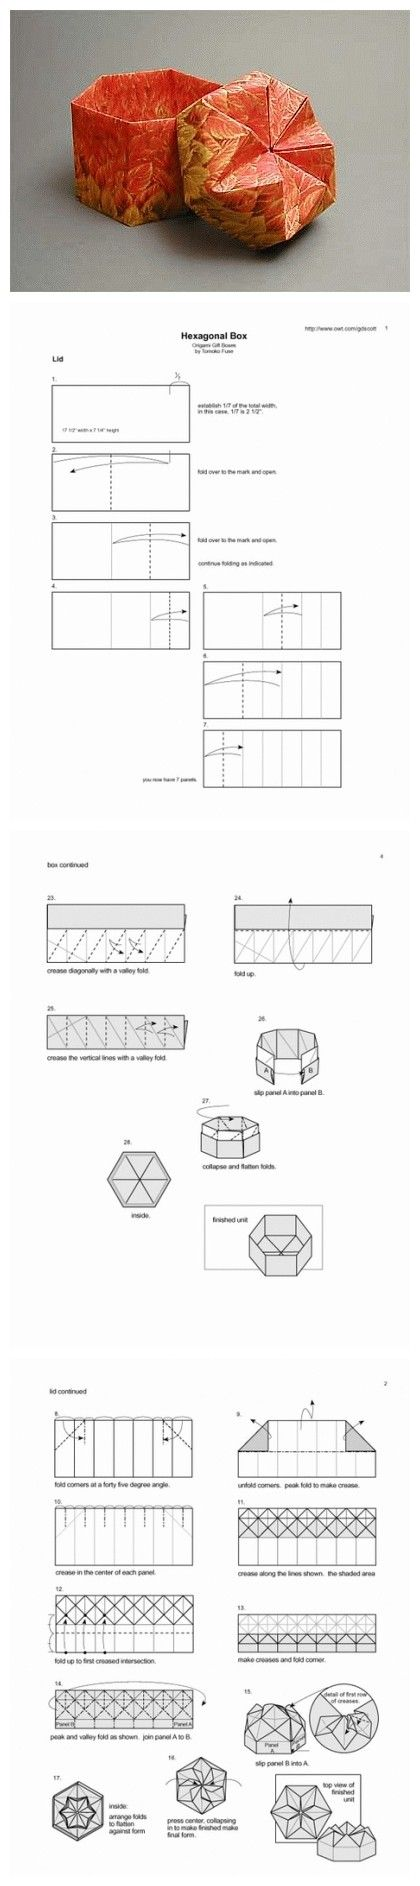 Origami Hexagonal Box Folding Instructions | Origami Instruction